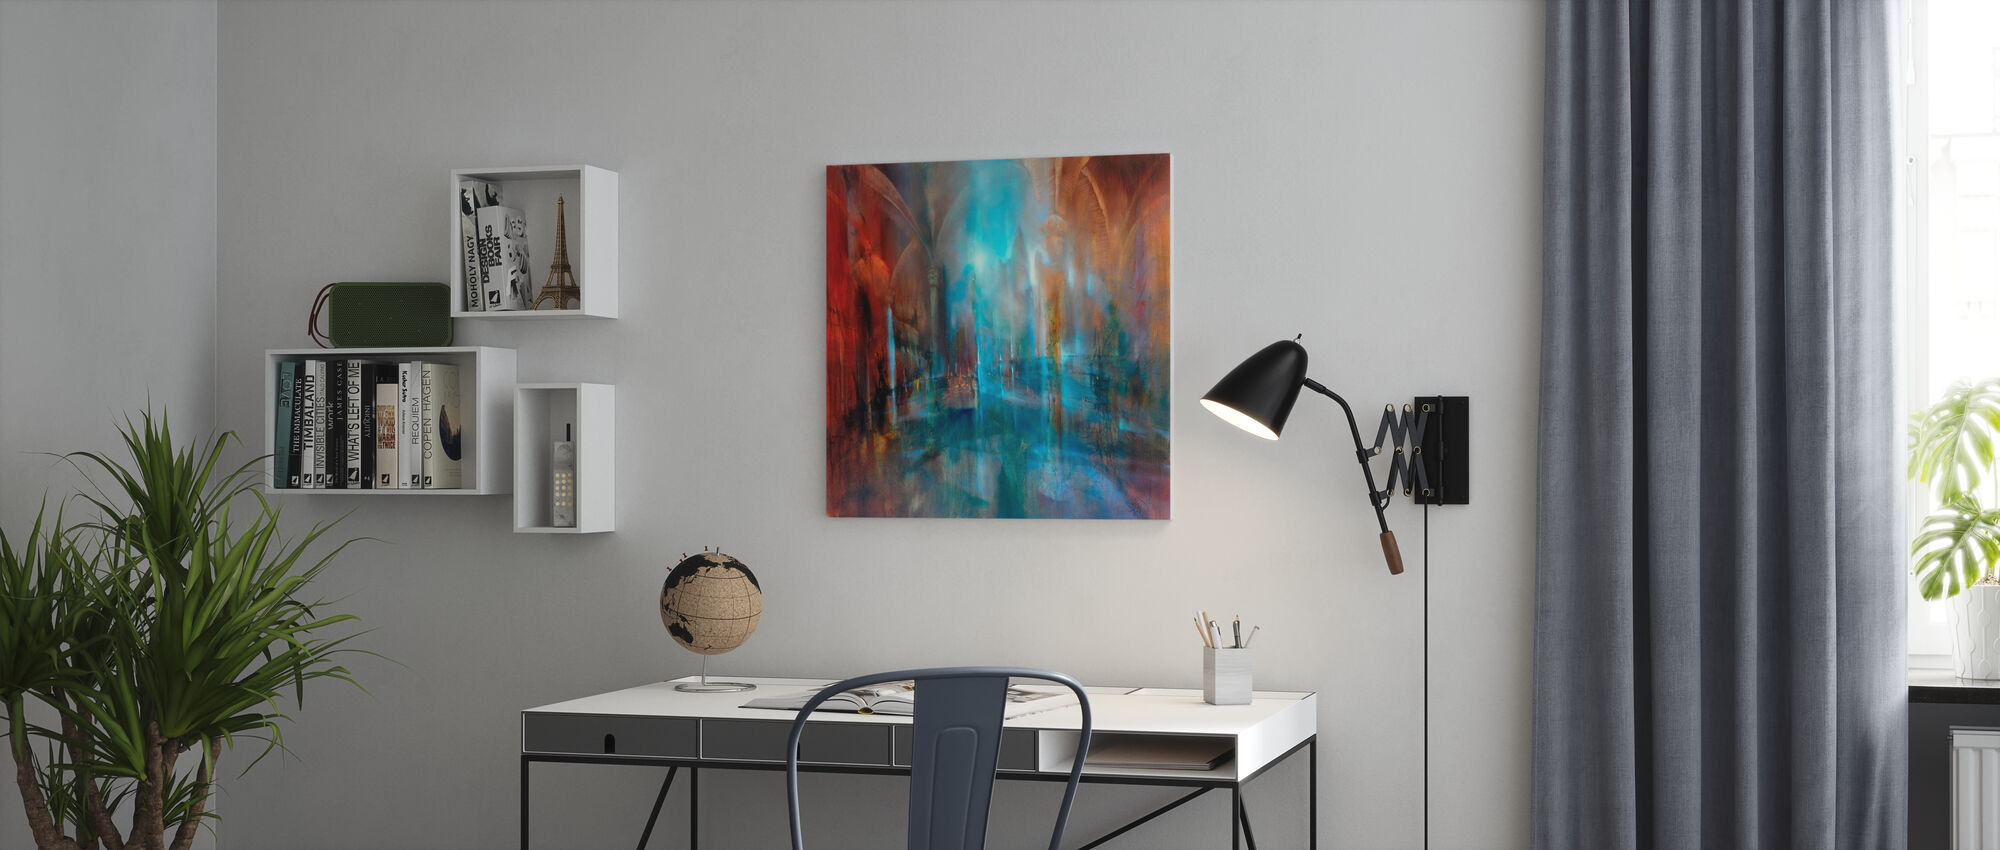 Inside and Outside - Canvas print - Office